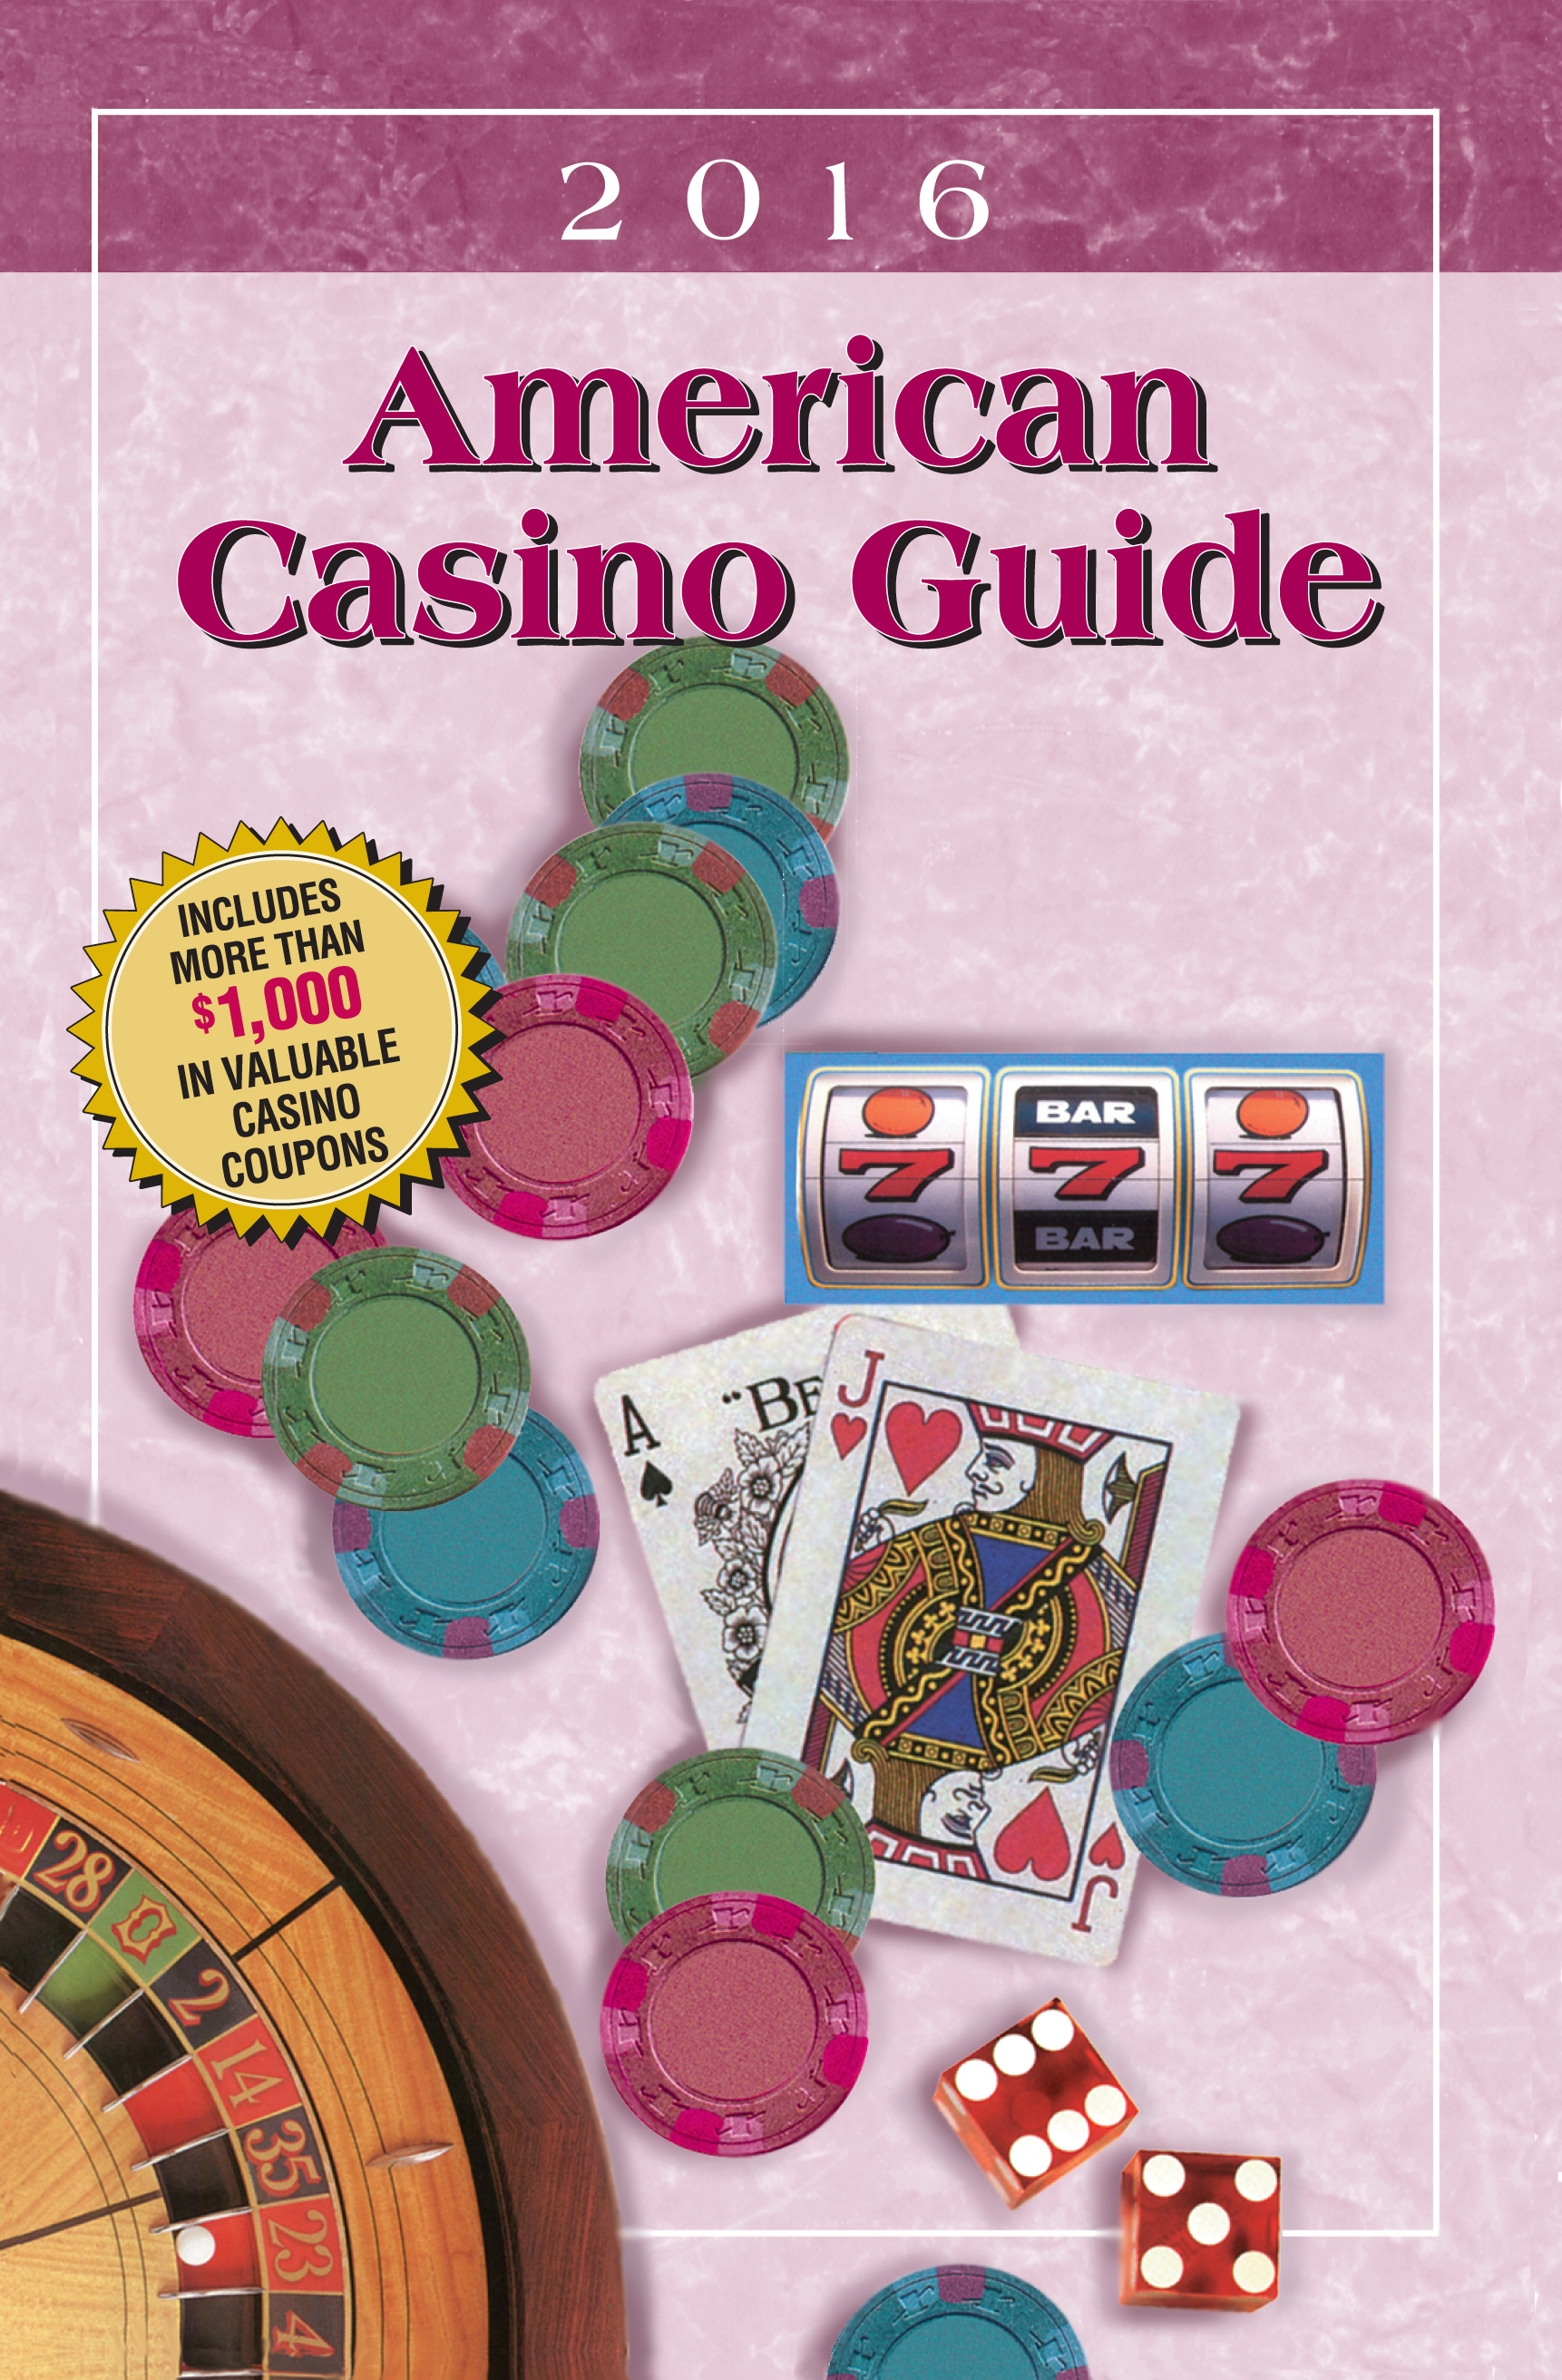 American Casino Guide Show For December 2015 #1:  Cher Slot Machine From Bally Gaming